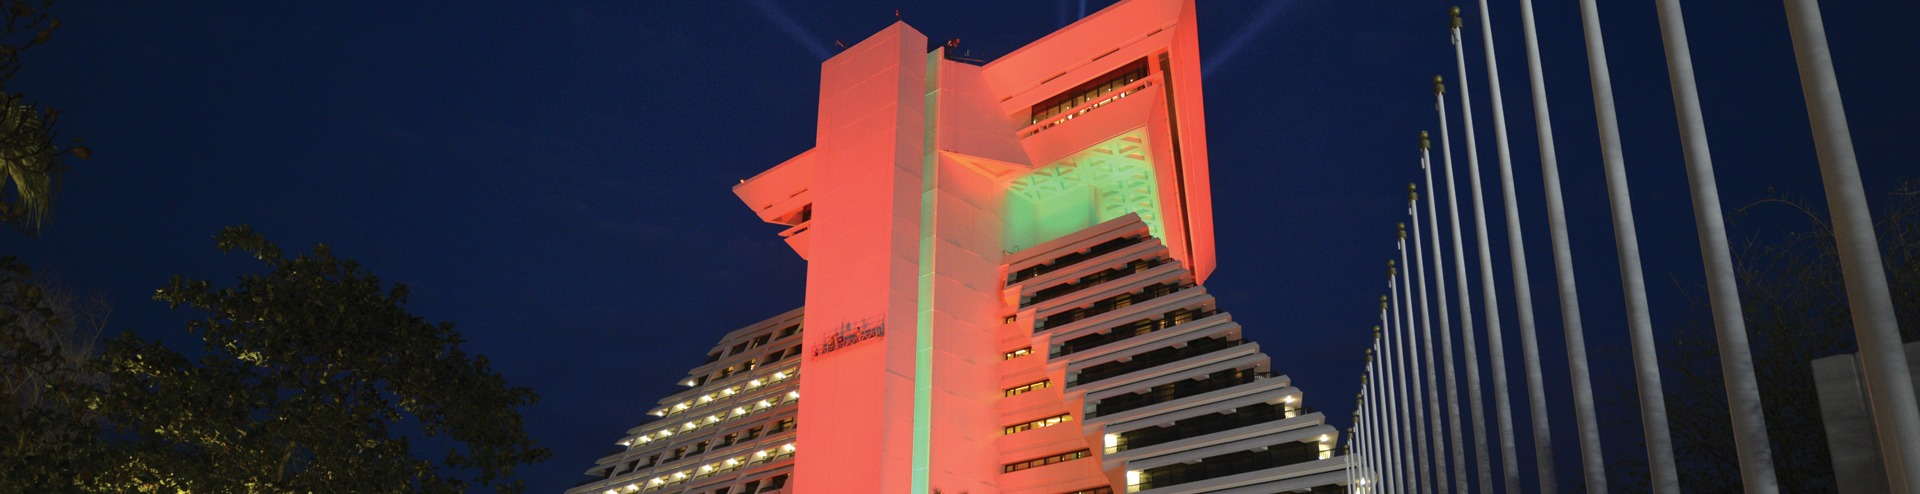 Architectural-lighting-Doha